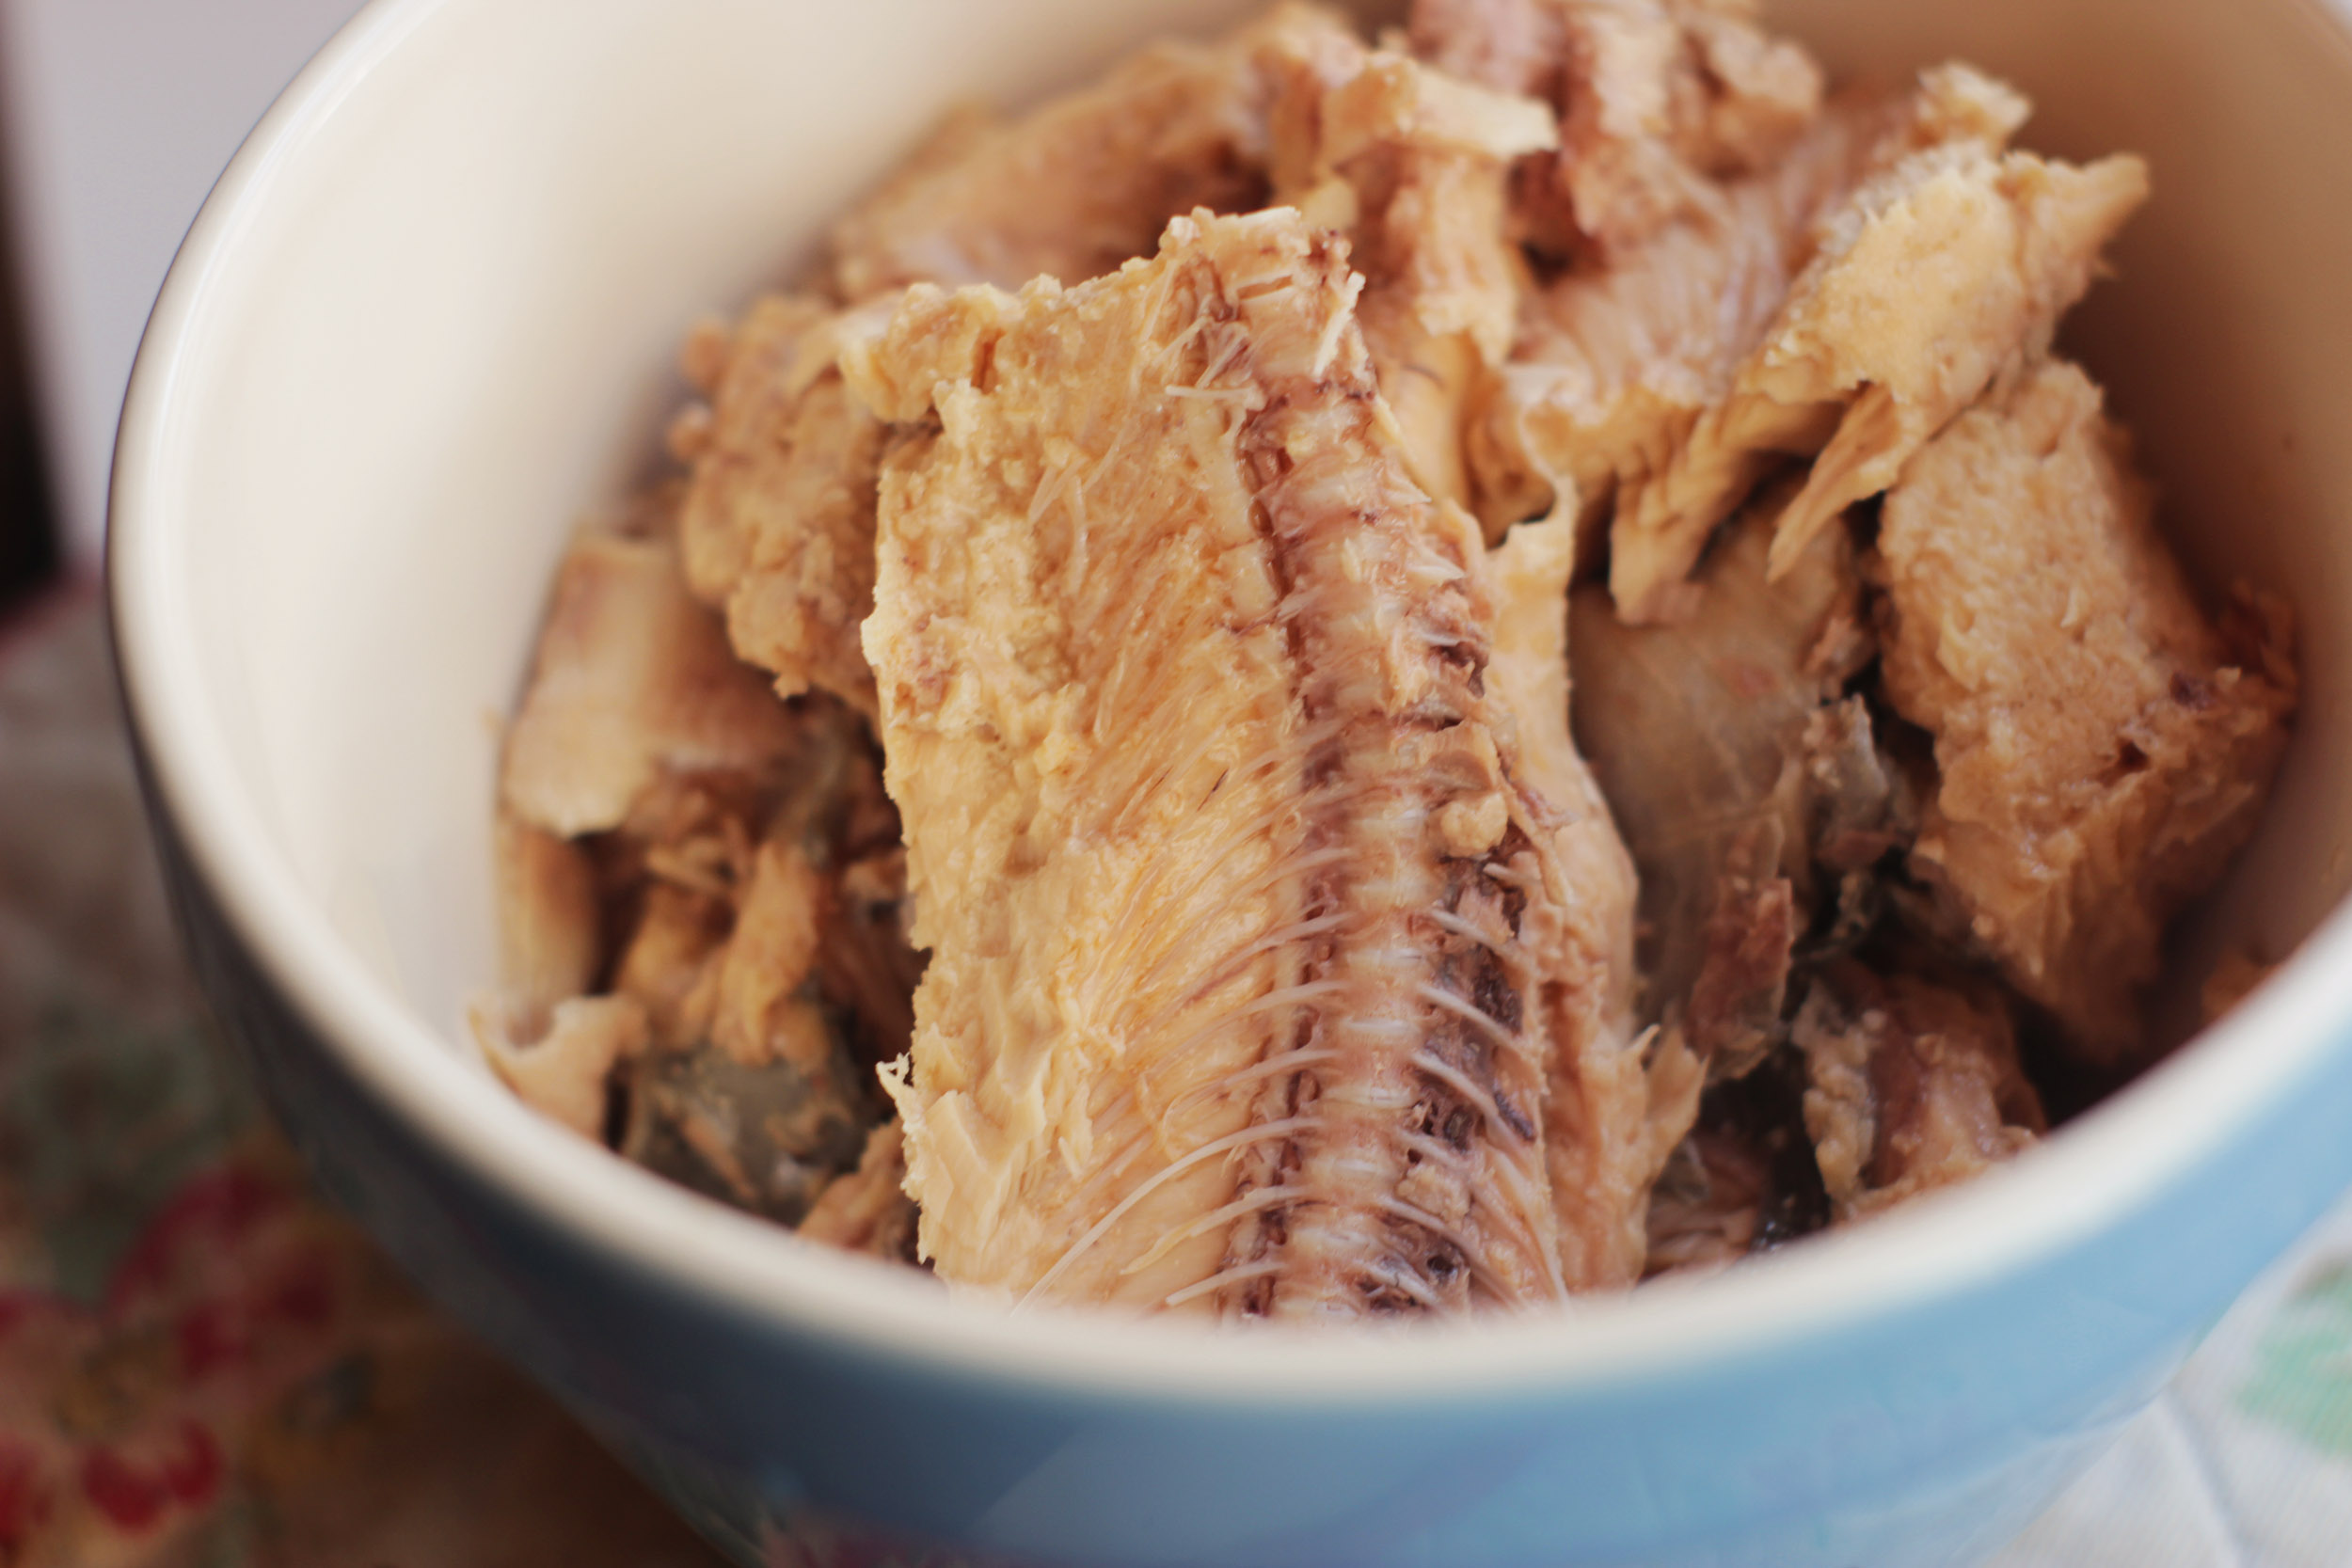 Tinned salmon bones are an excellent source of calcium